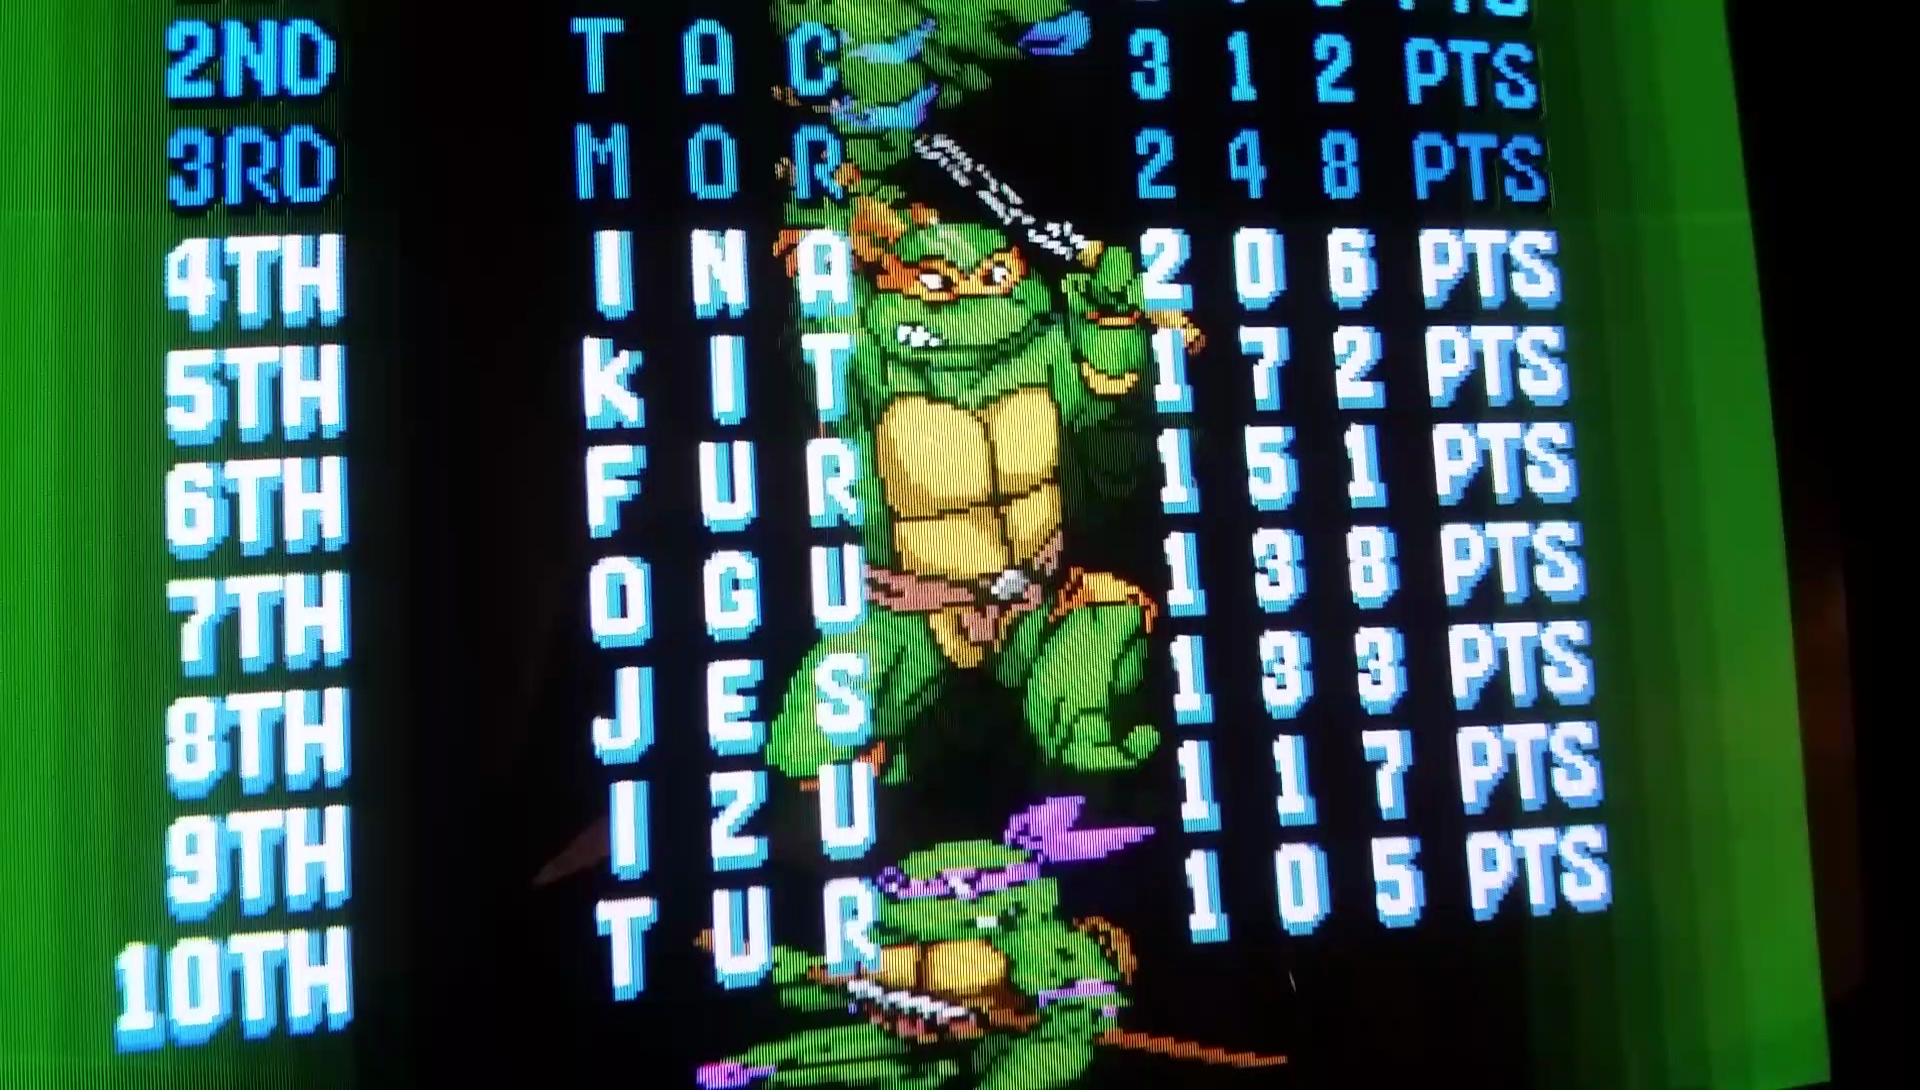 JES: Teenage Mutant Ninja Turtles: Turtles In Time [tmnt2] (Arcade Emulated / M.A.M.E.) 133 points on 2017-02-18 13:19:27